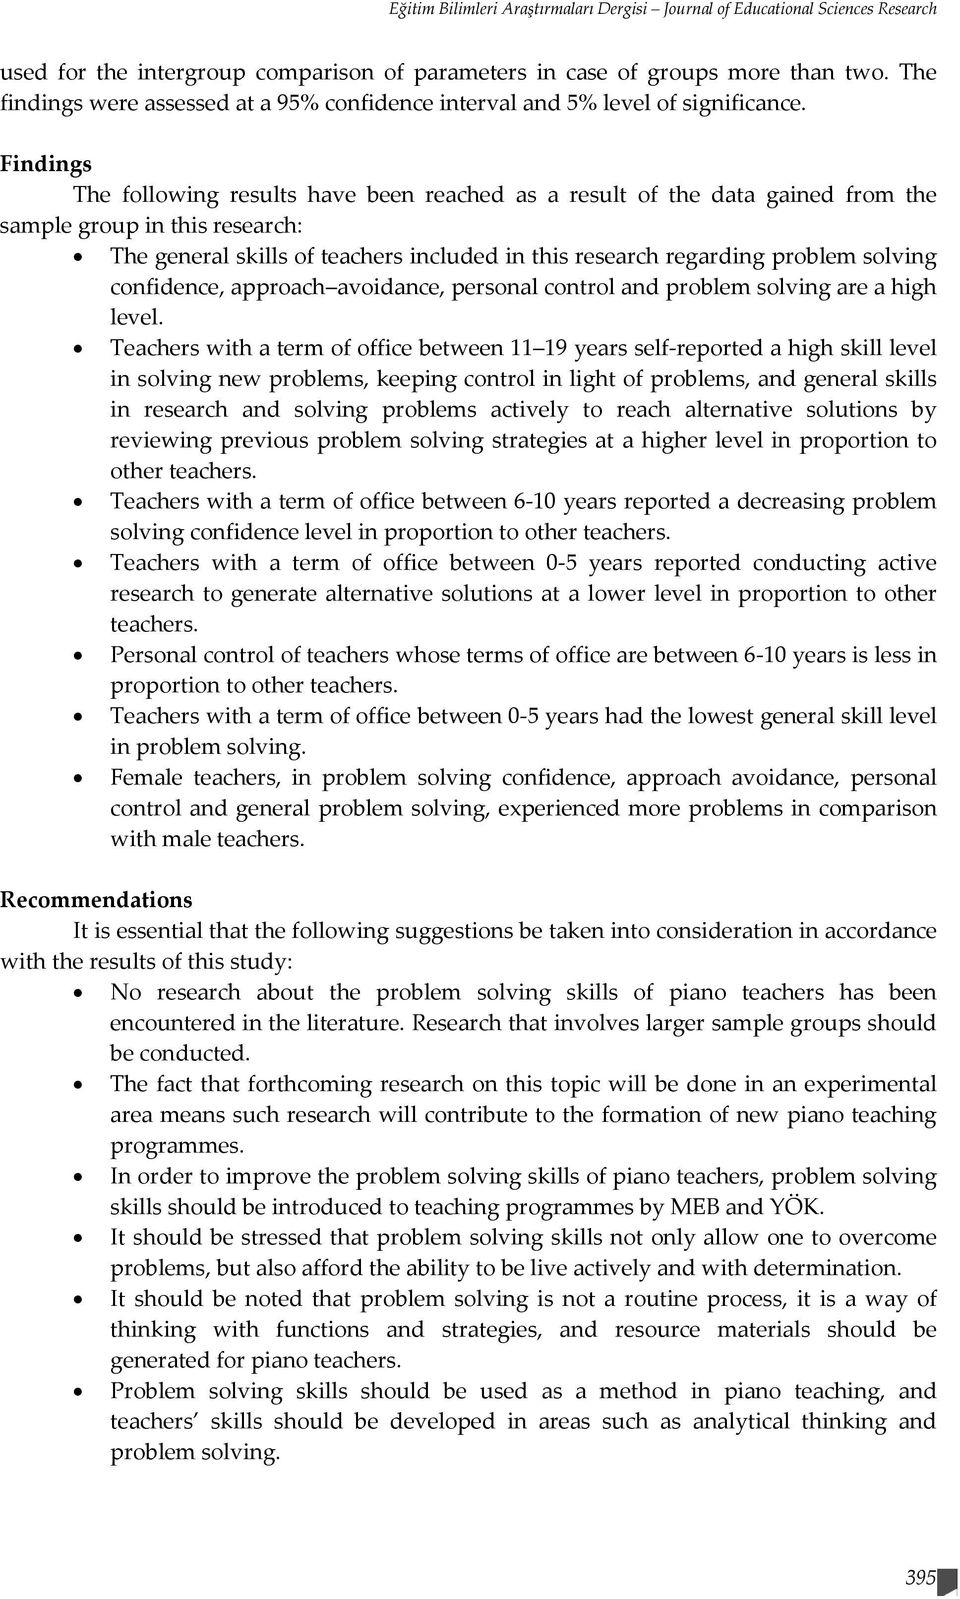 Findings The following results have been reached as a result of the data gained from the sample group in this research: The general skills of teachers included in this research regarding problem